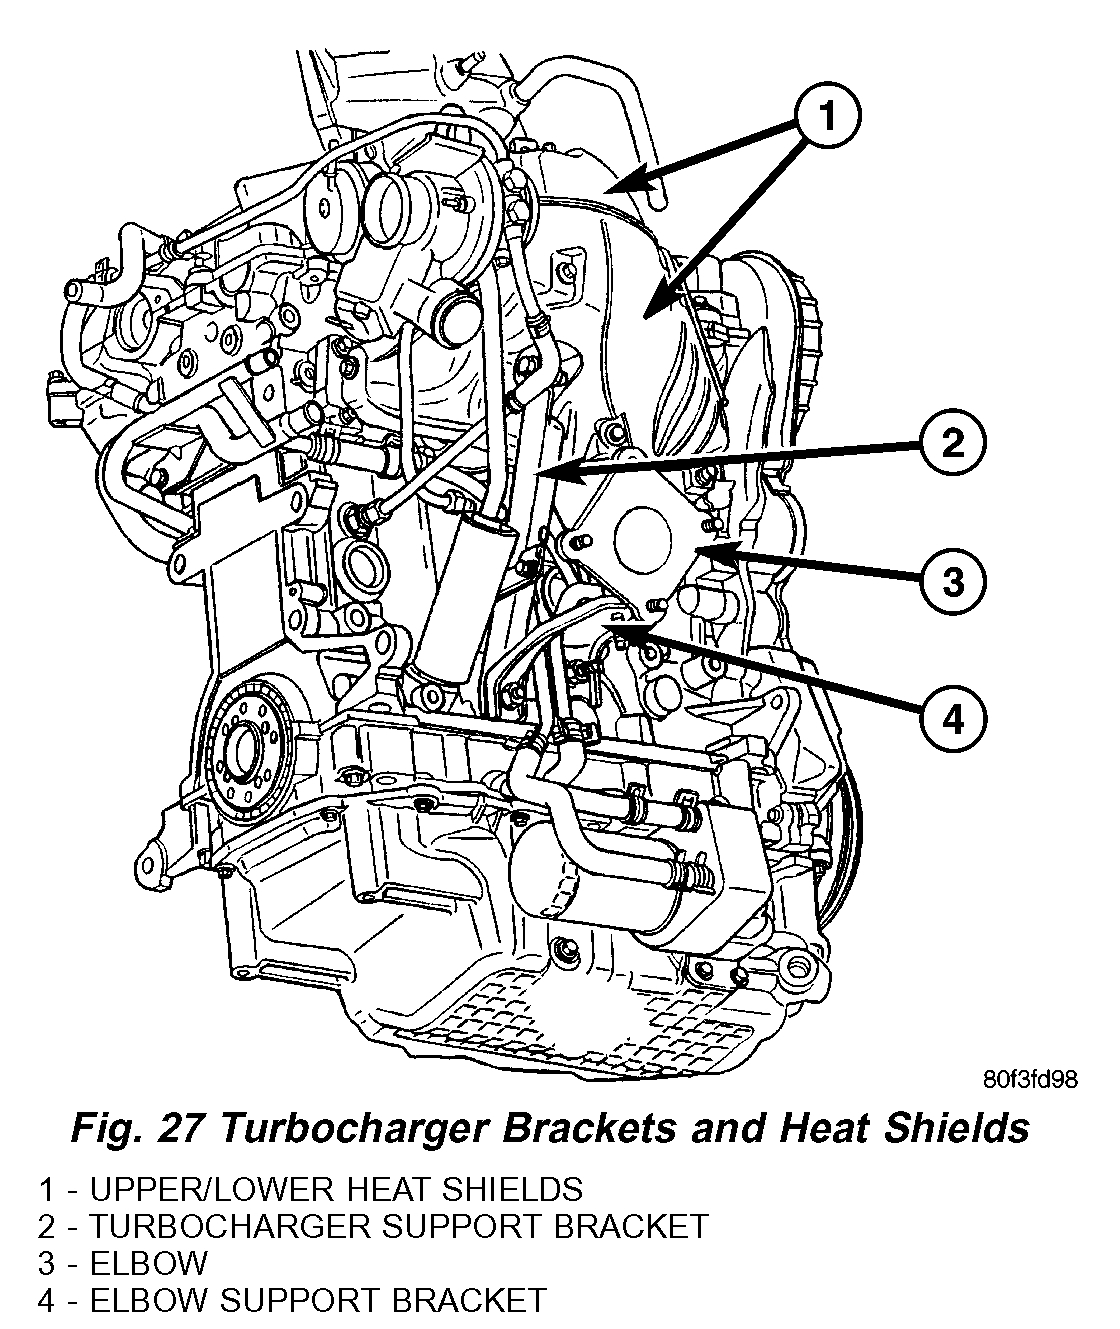 Vacuum Line Diagram For Turbocharger Had To Replace